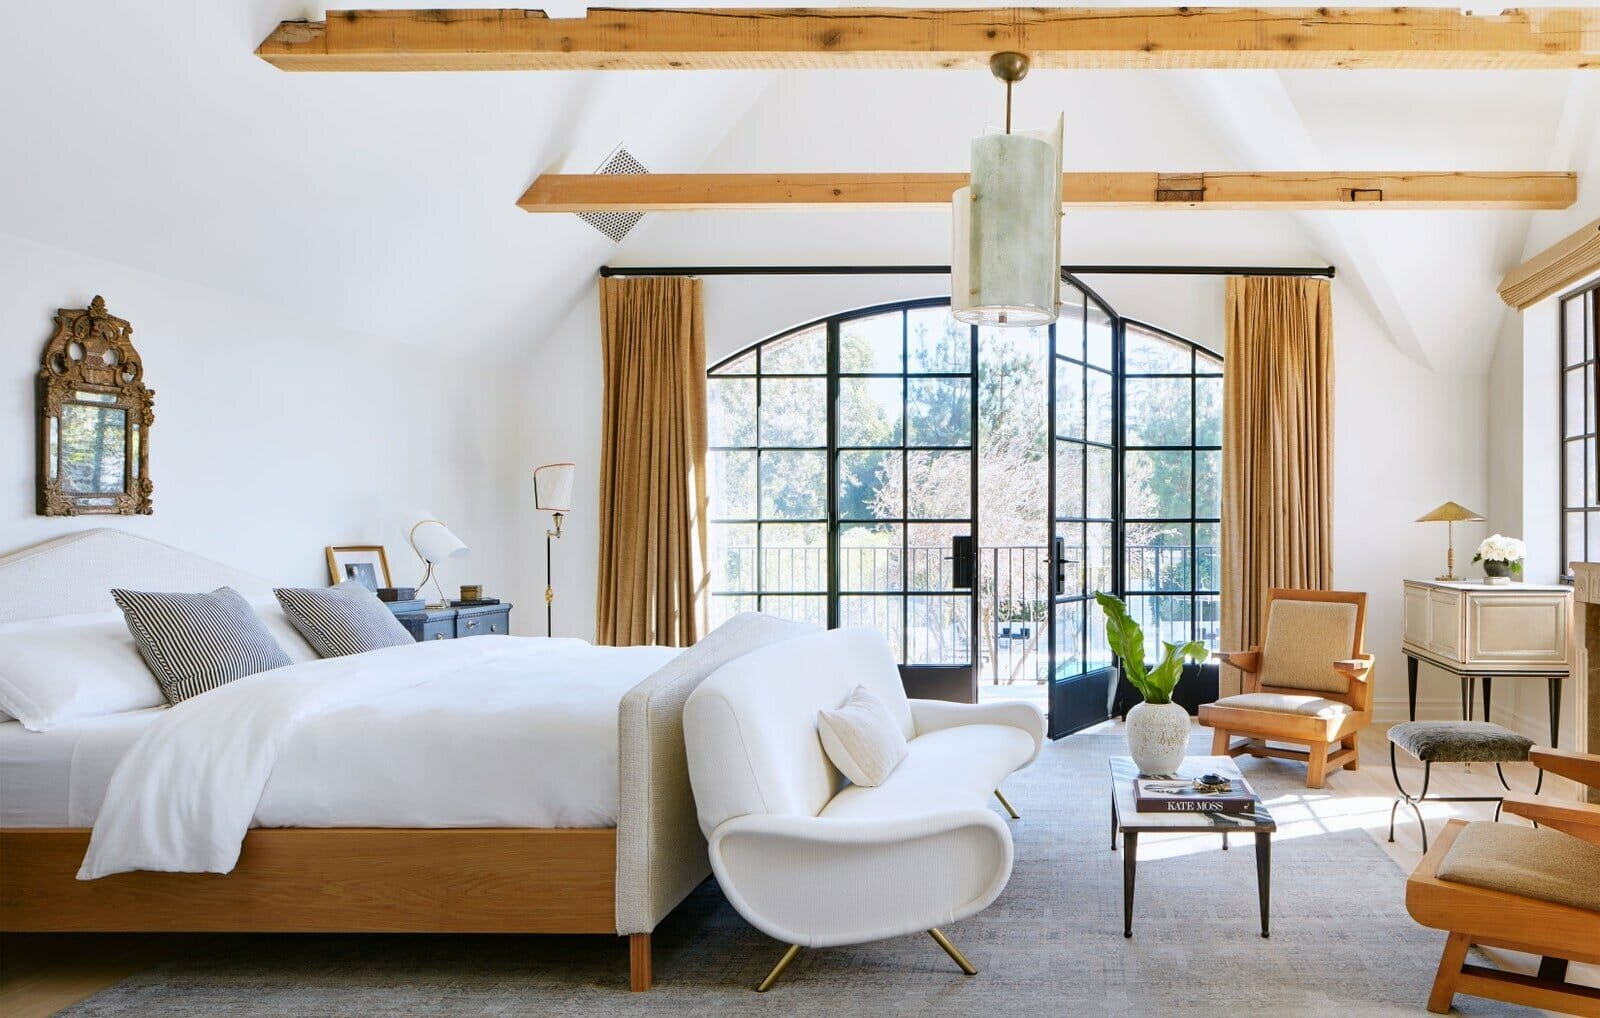 Modern rustic master bedroom ideas create a personal retreat - by Nate Berkus